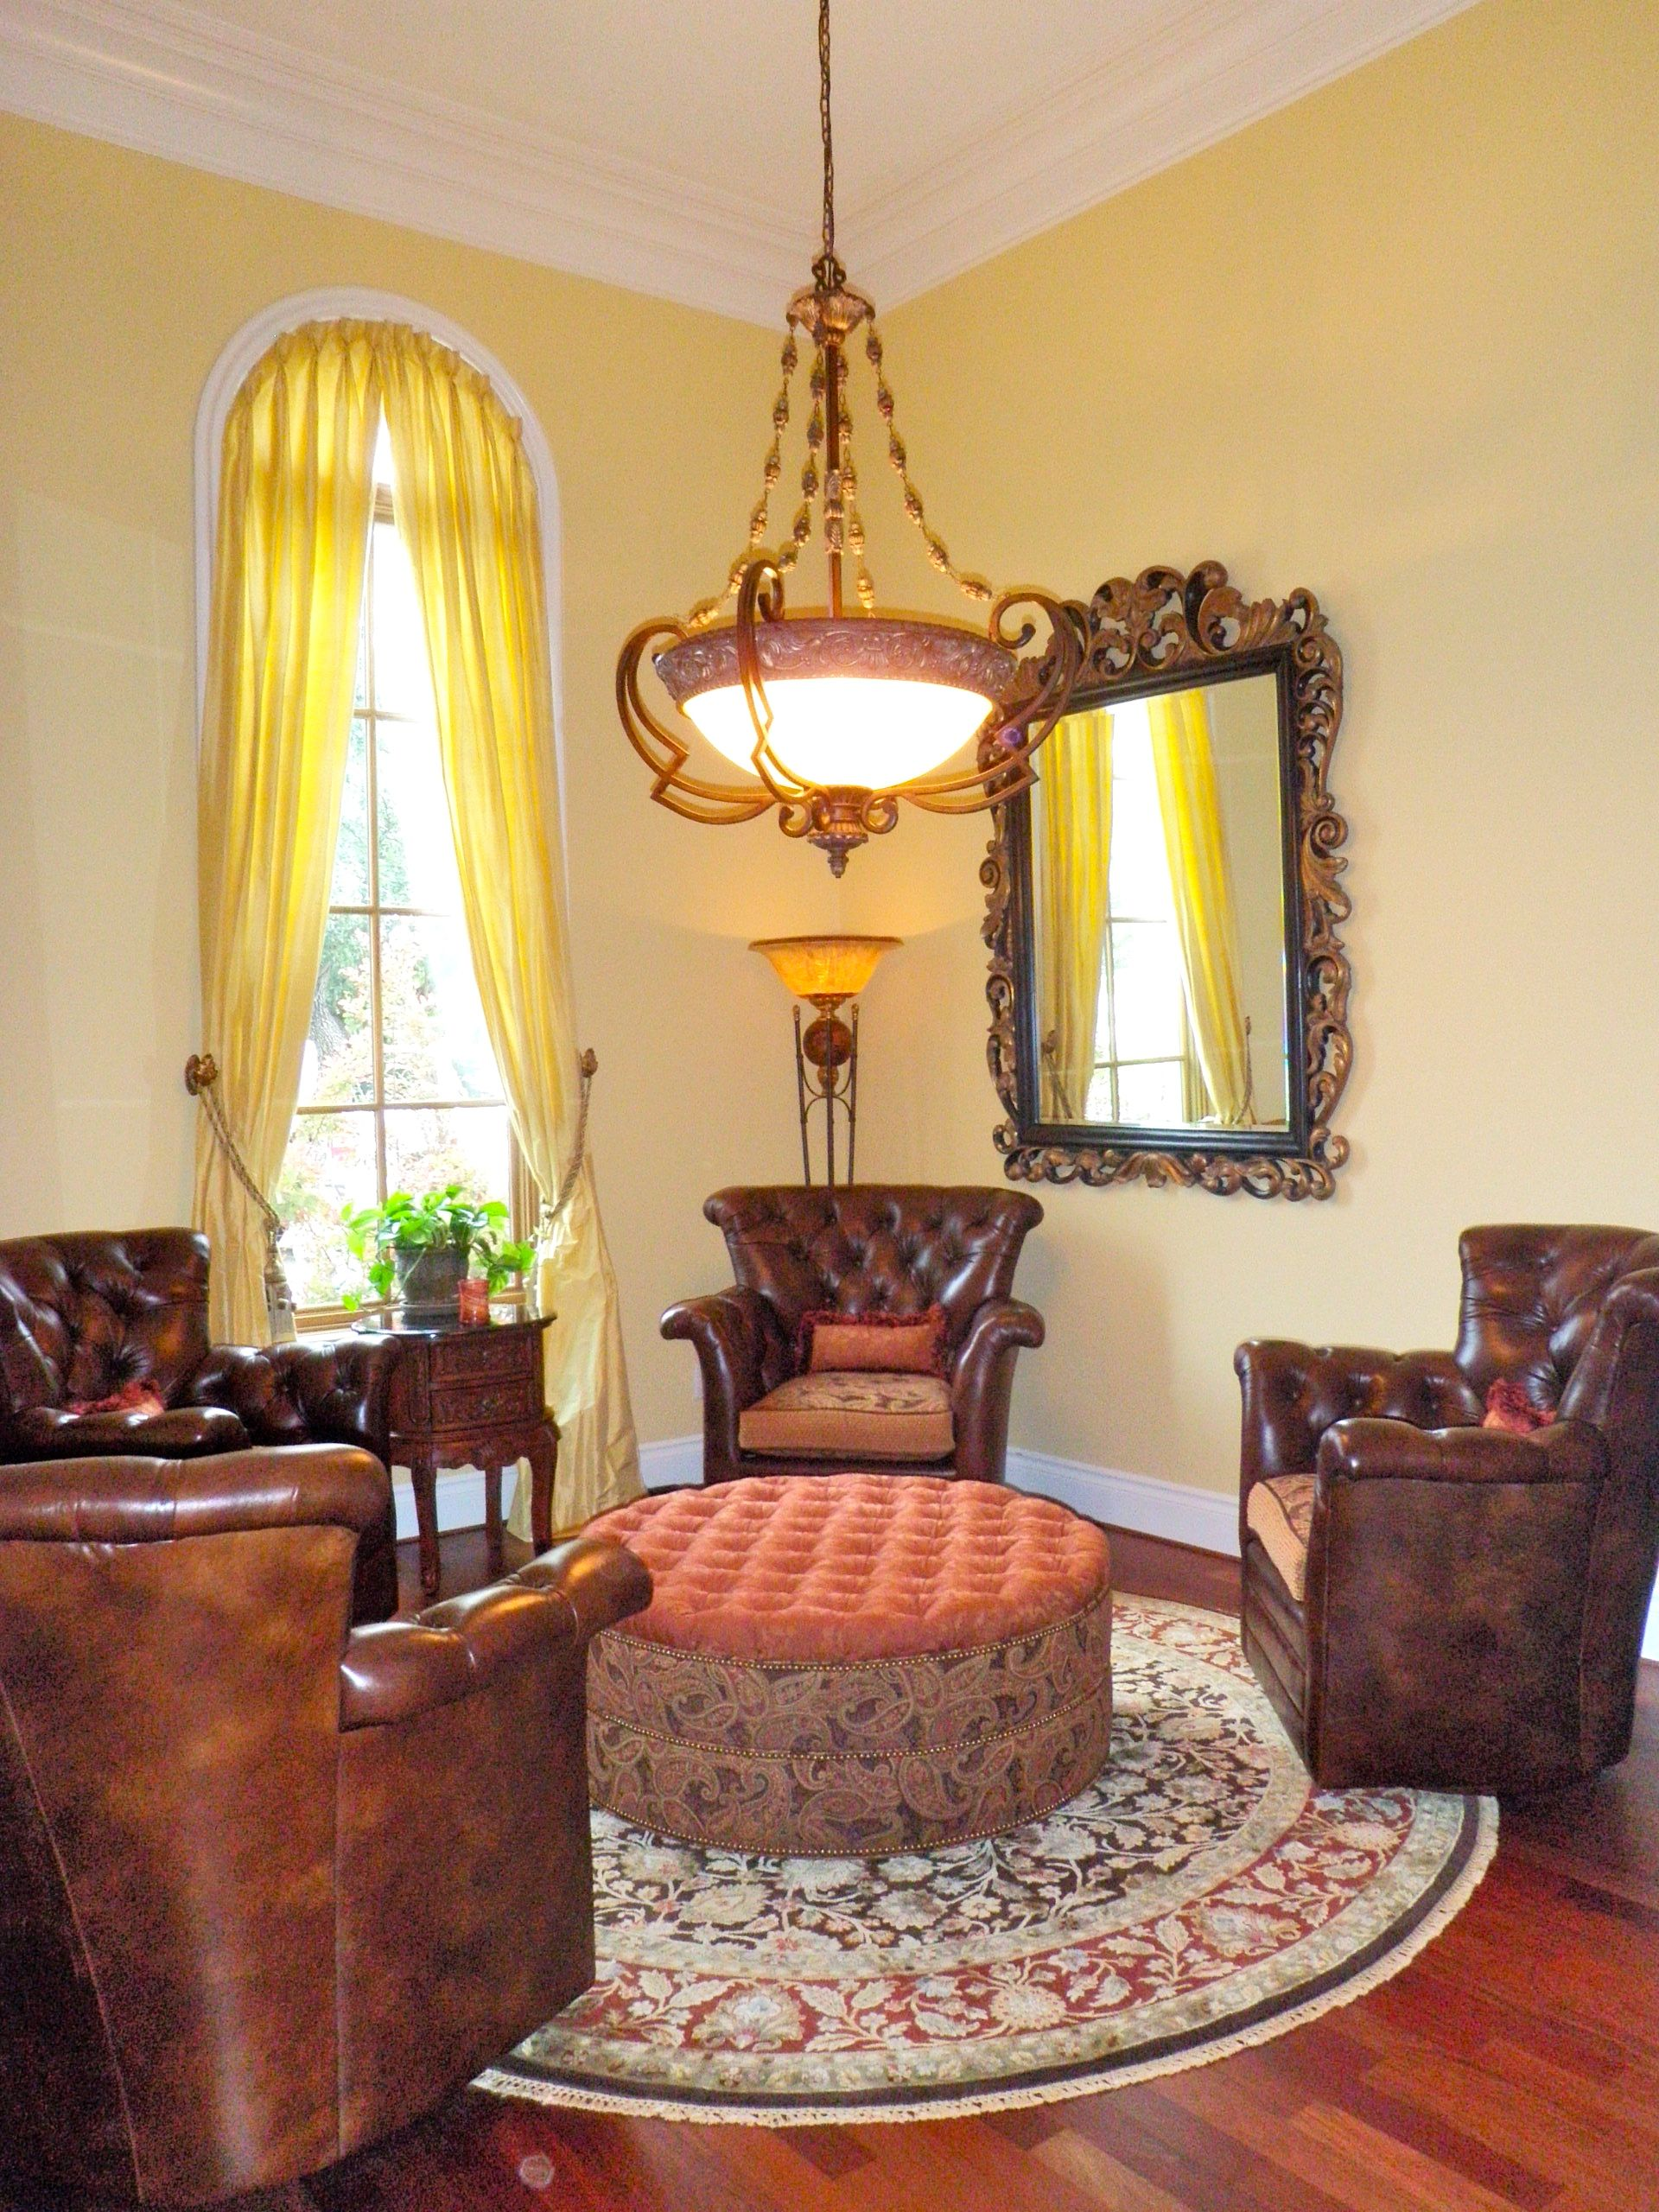 Turned A Small Formal Dining Room Into An Inviting Tuscan Wine